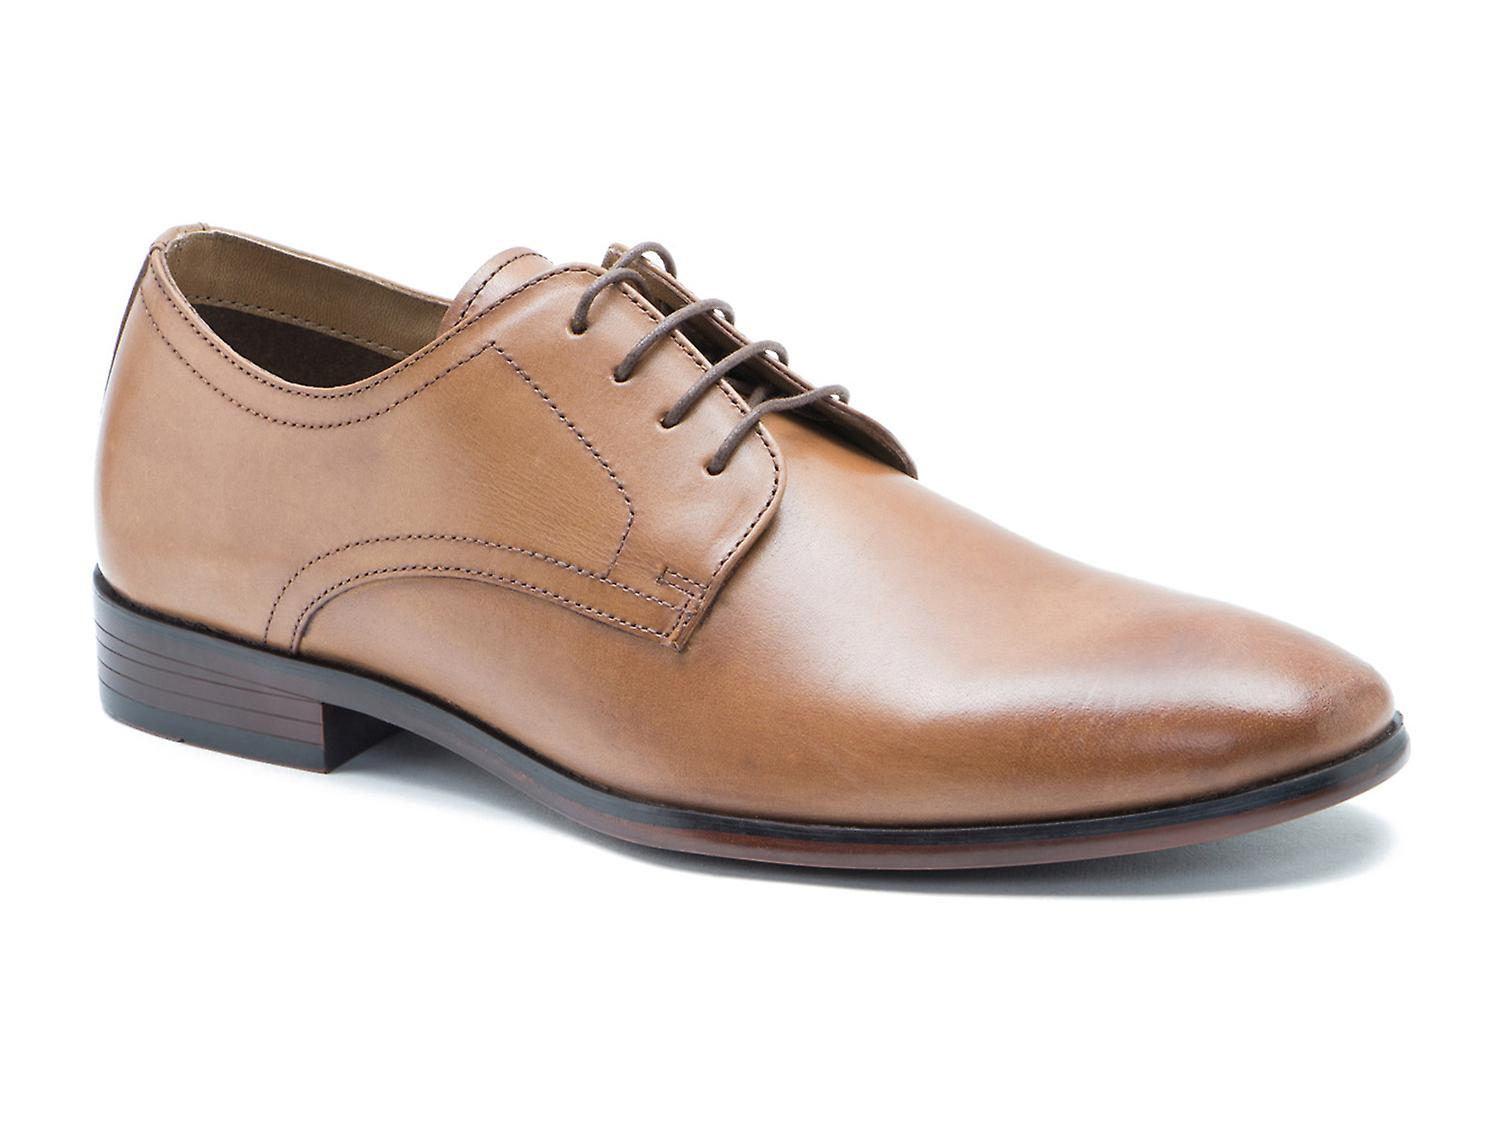 Red Tape Silwood Tan Leather Formal Mens Derby Shoes